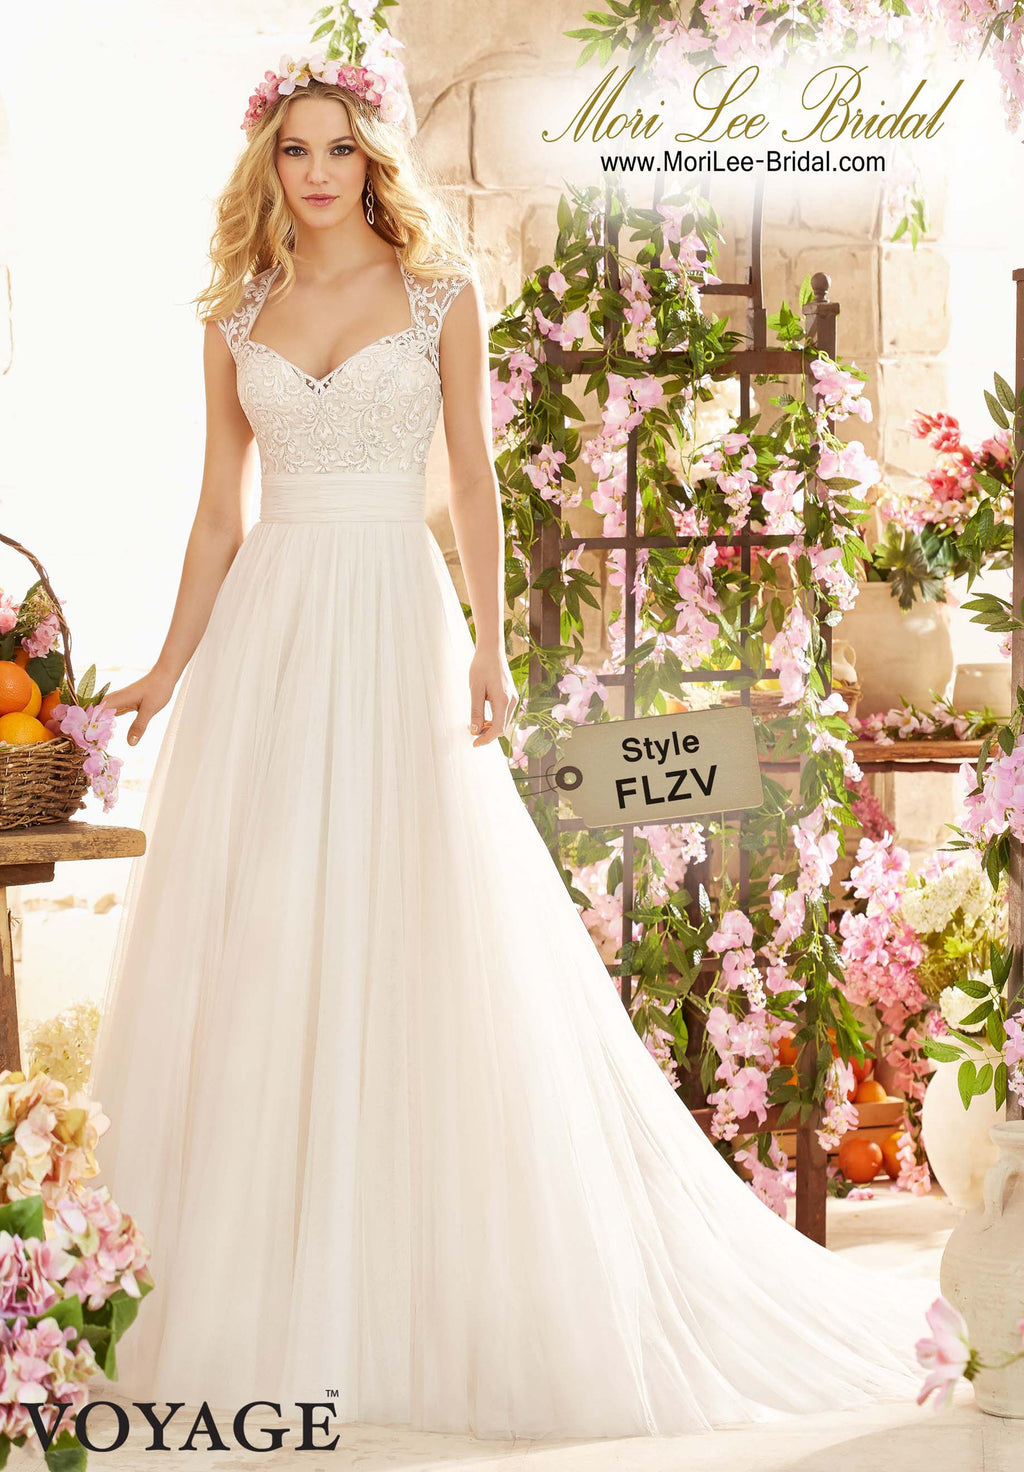 FLZV - Mori Lee Bridal